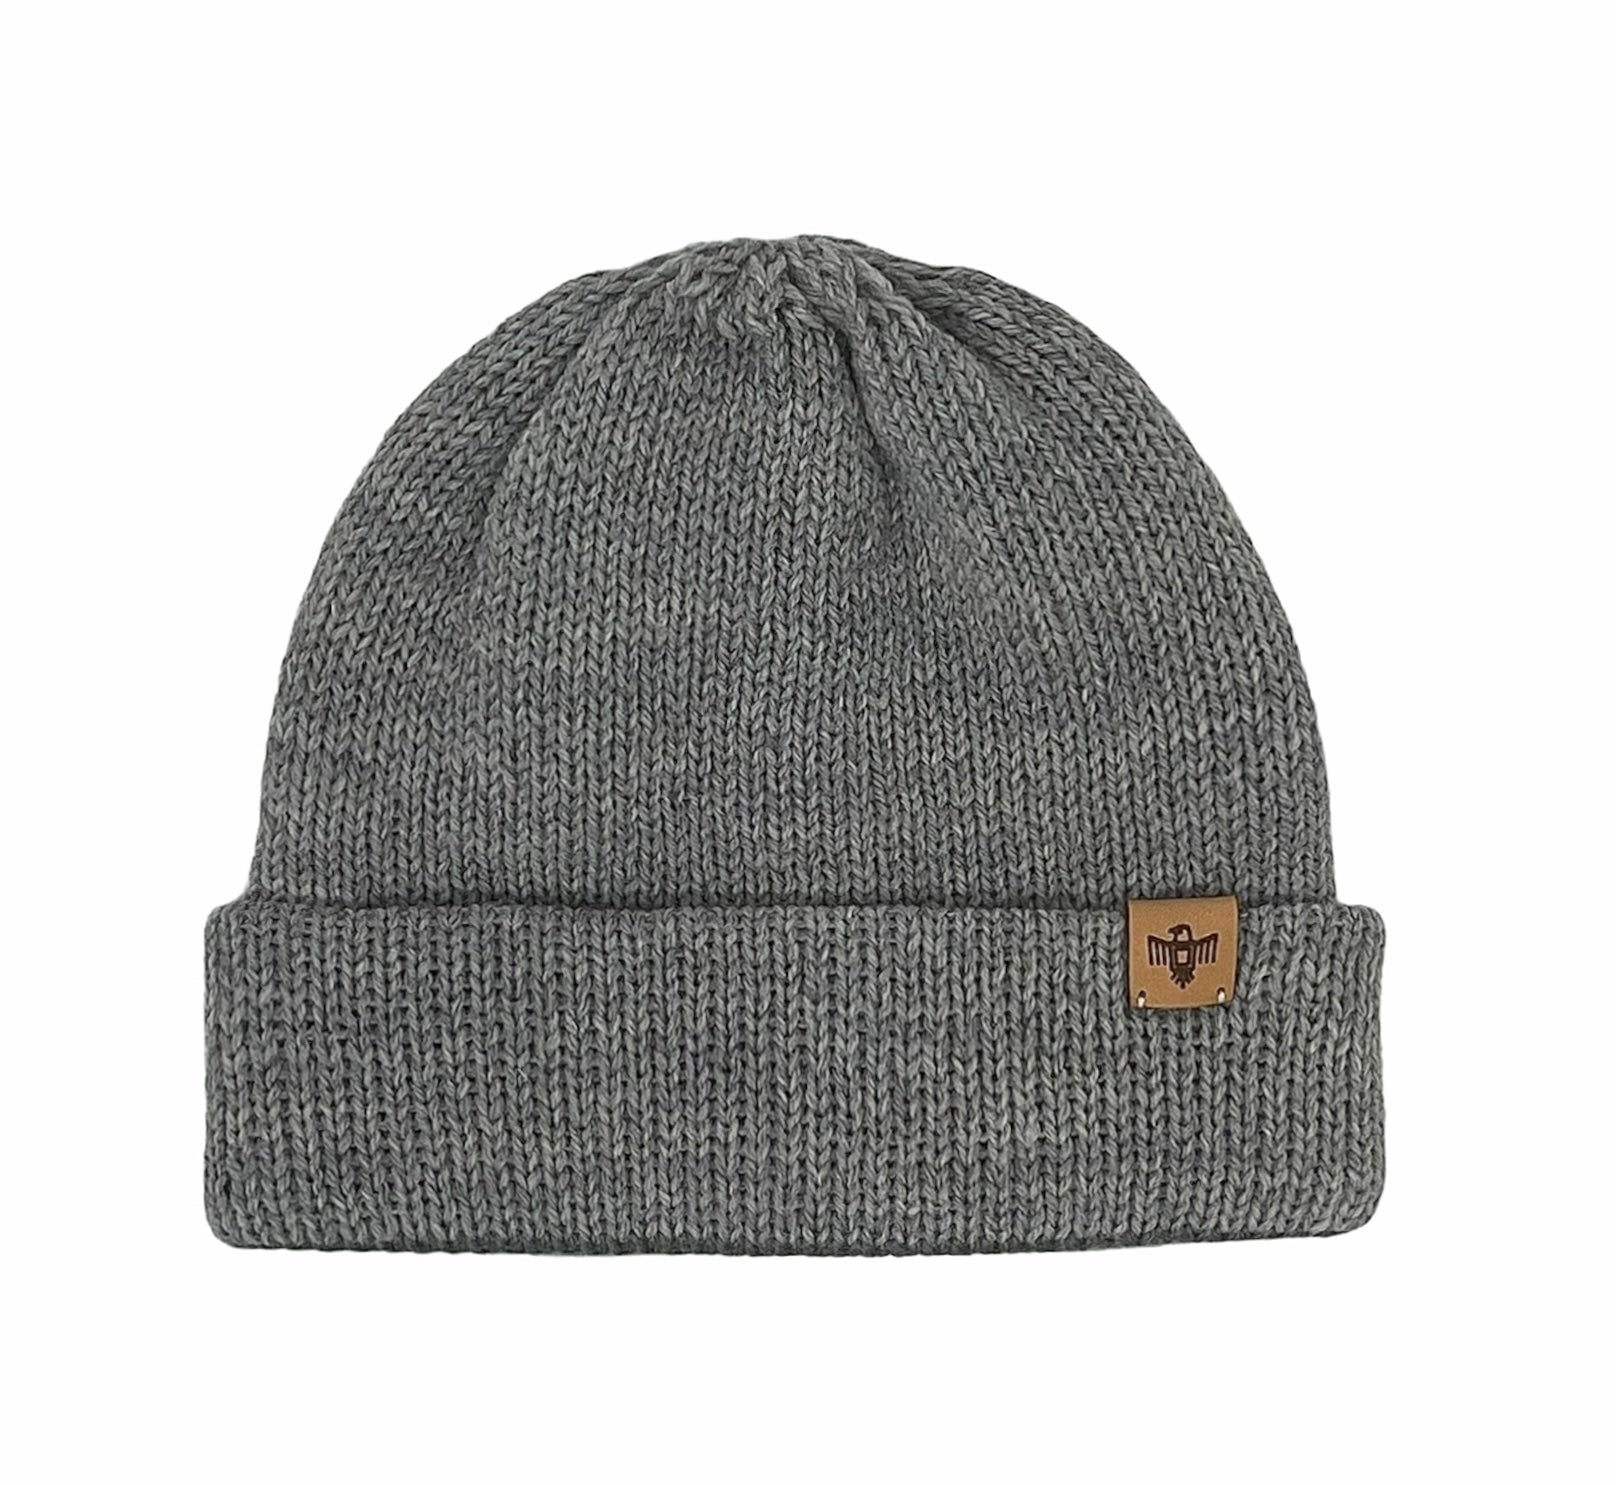 The Lightweight Urban Beanie